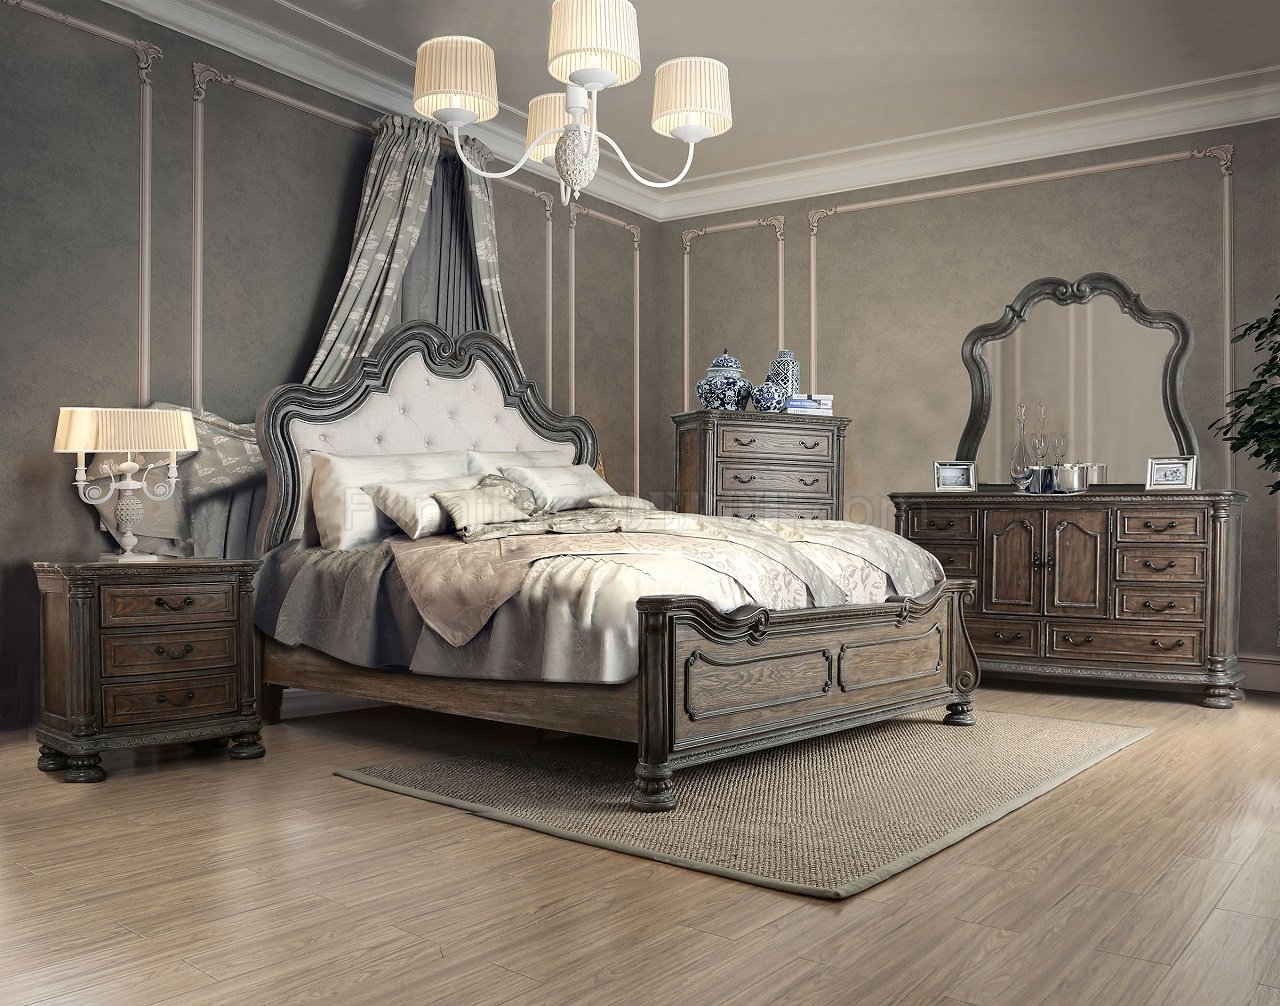 ariadne cm7662 bedroom in rustic natural tone w options 17557 | 842ae88a369d3efdfb0b219c408c45b9 image 1280x1006